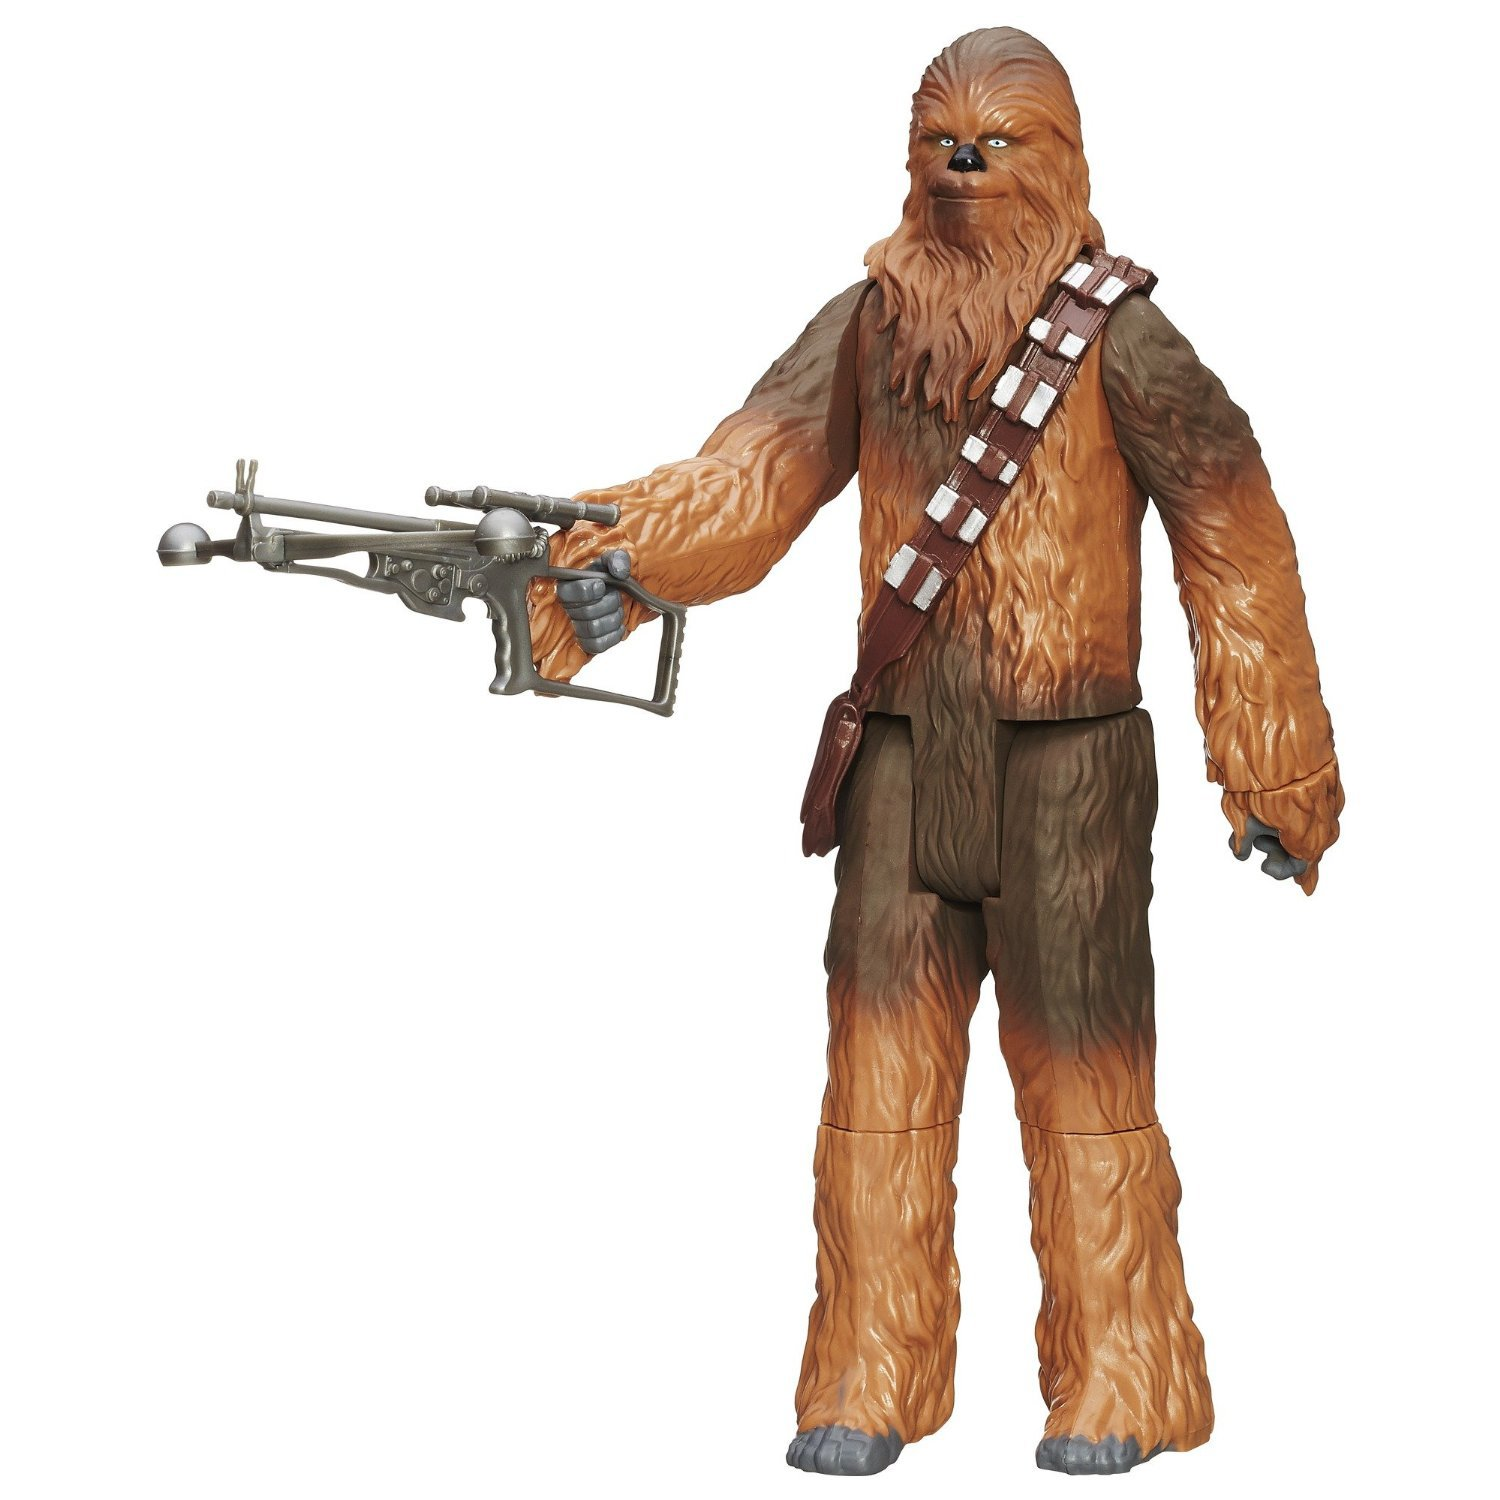 figurina star wars the force awakens - chewbacca, 30.5 cm